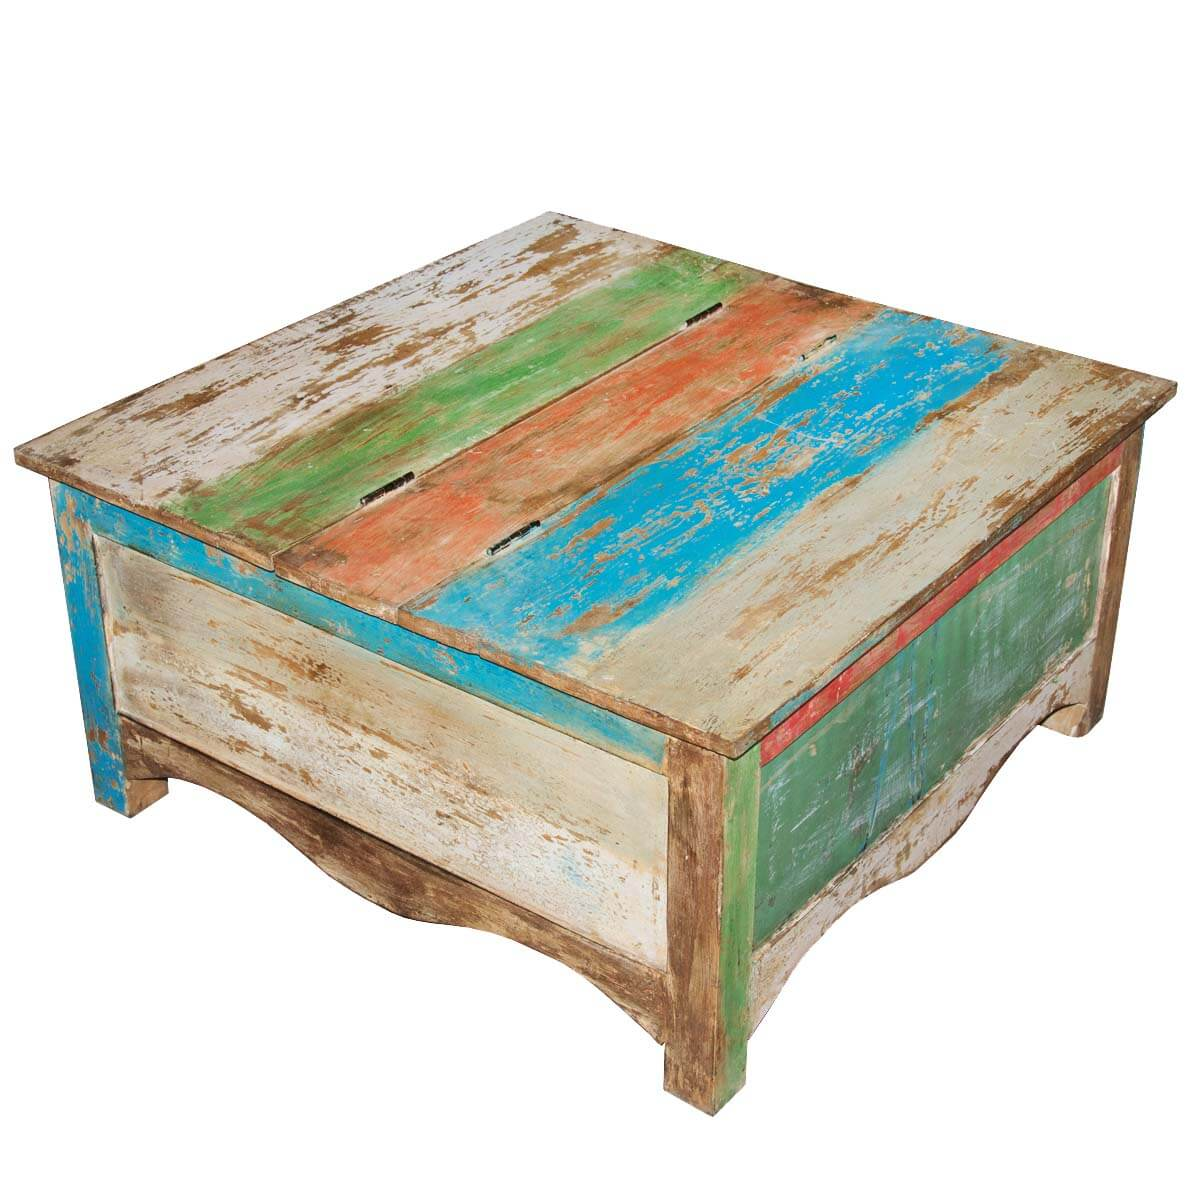 Rainbow striped square reclaimed wood coffee table storage chest Coffee table chest with storage